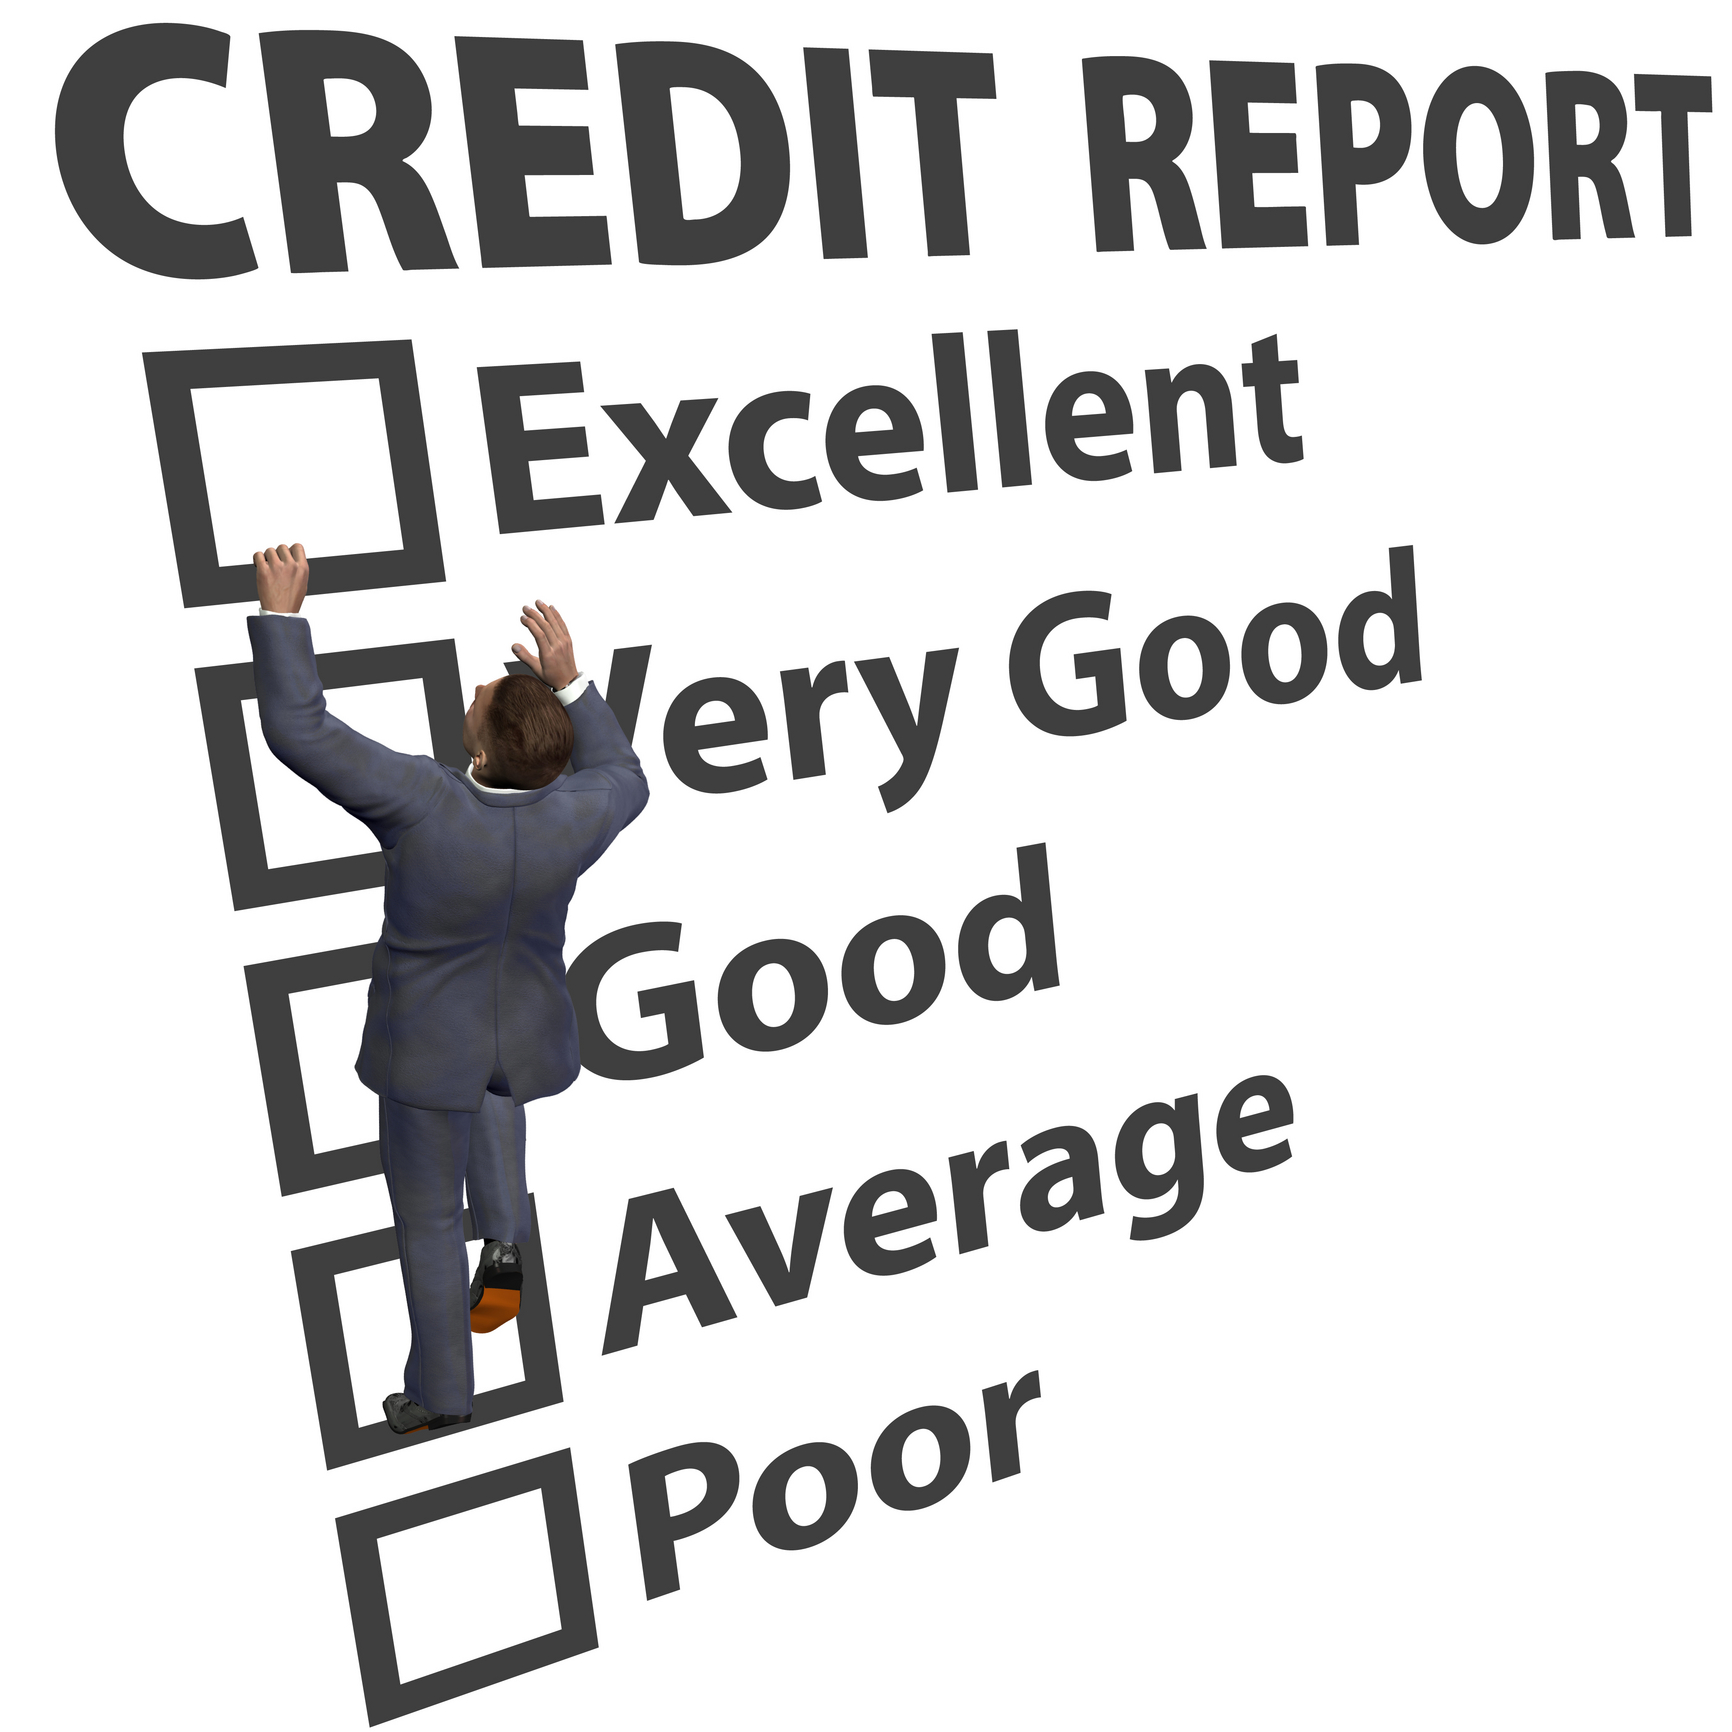 Monday's Audio Podcast – Let's Talk About Credit Reports